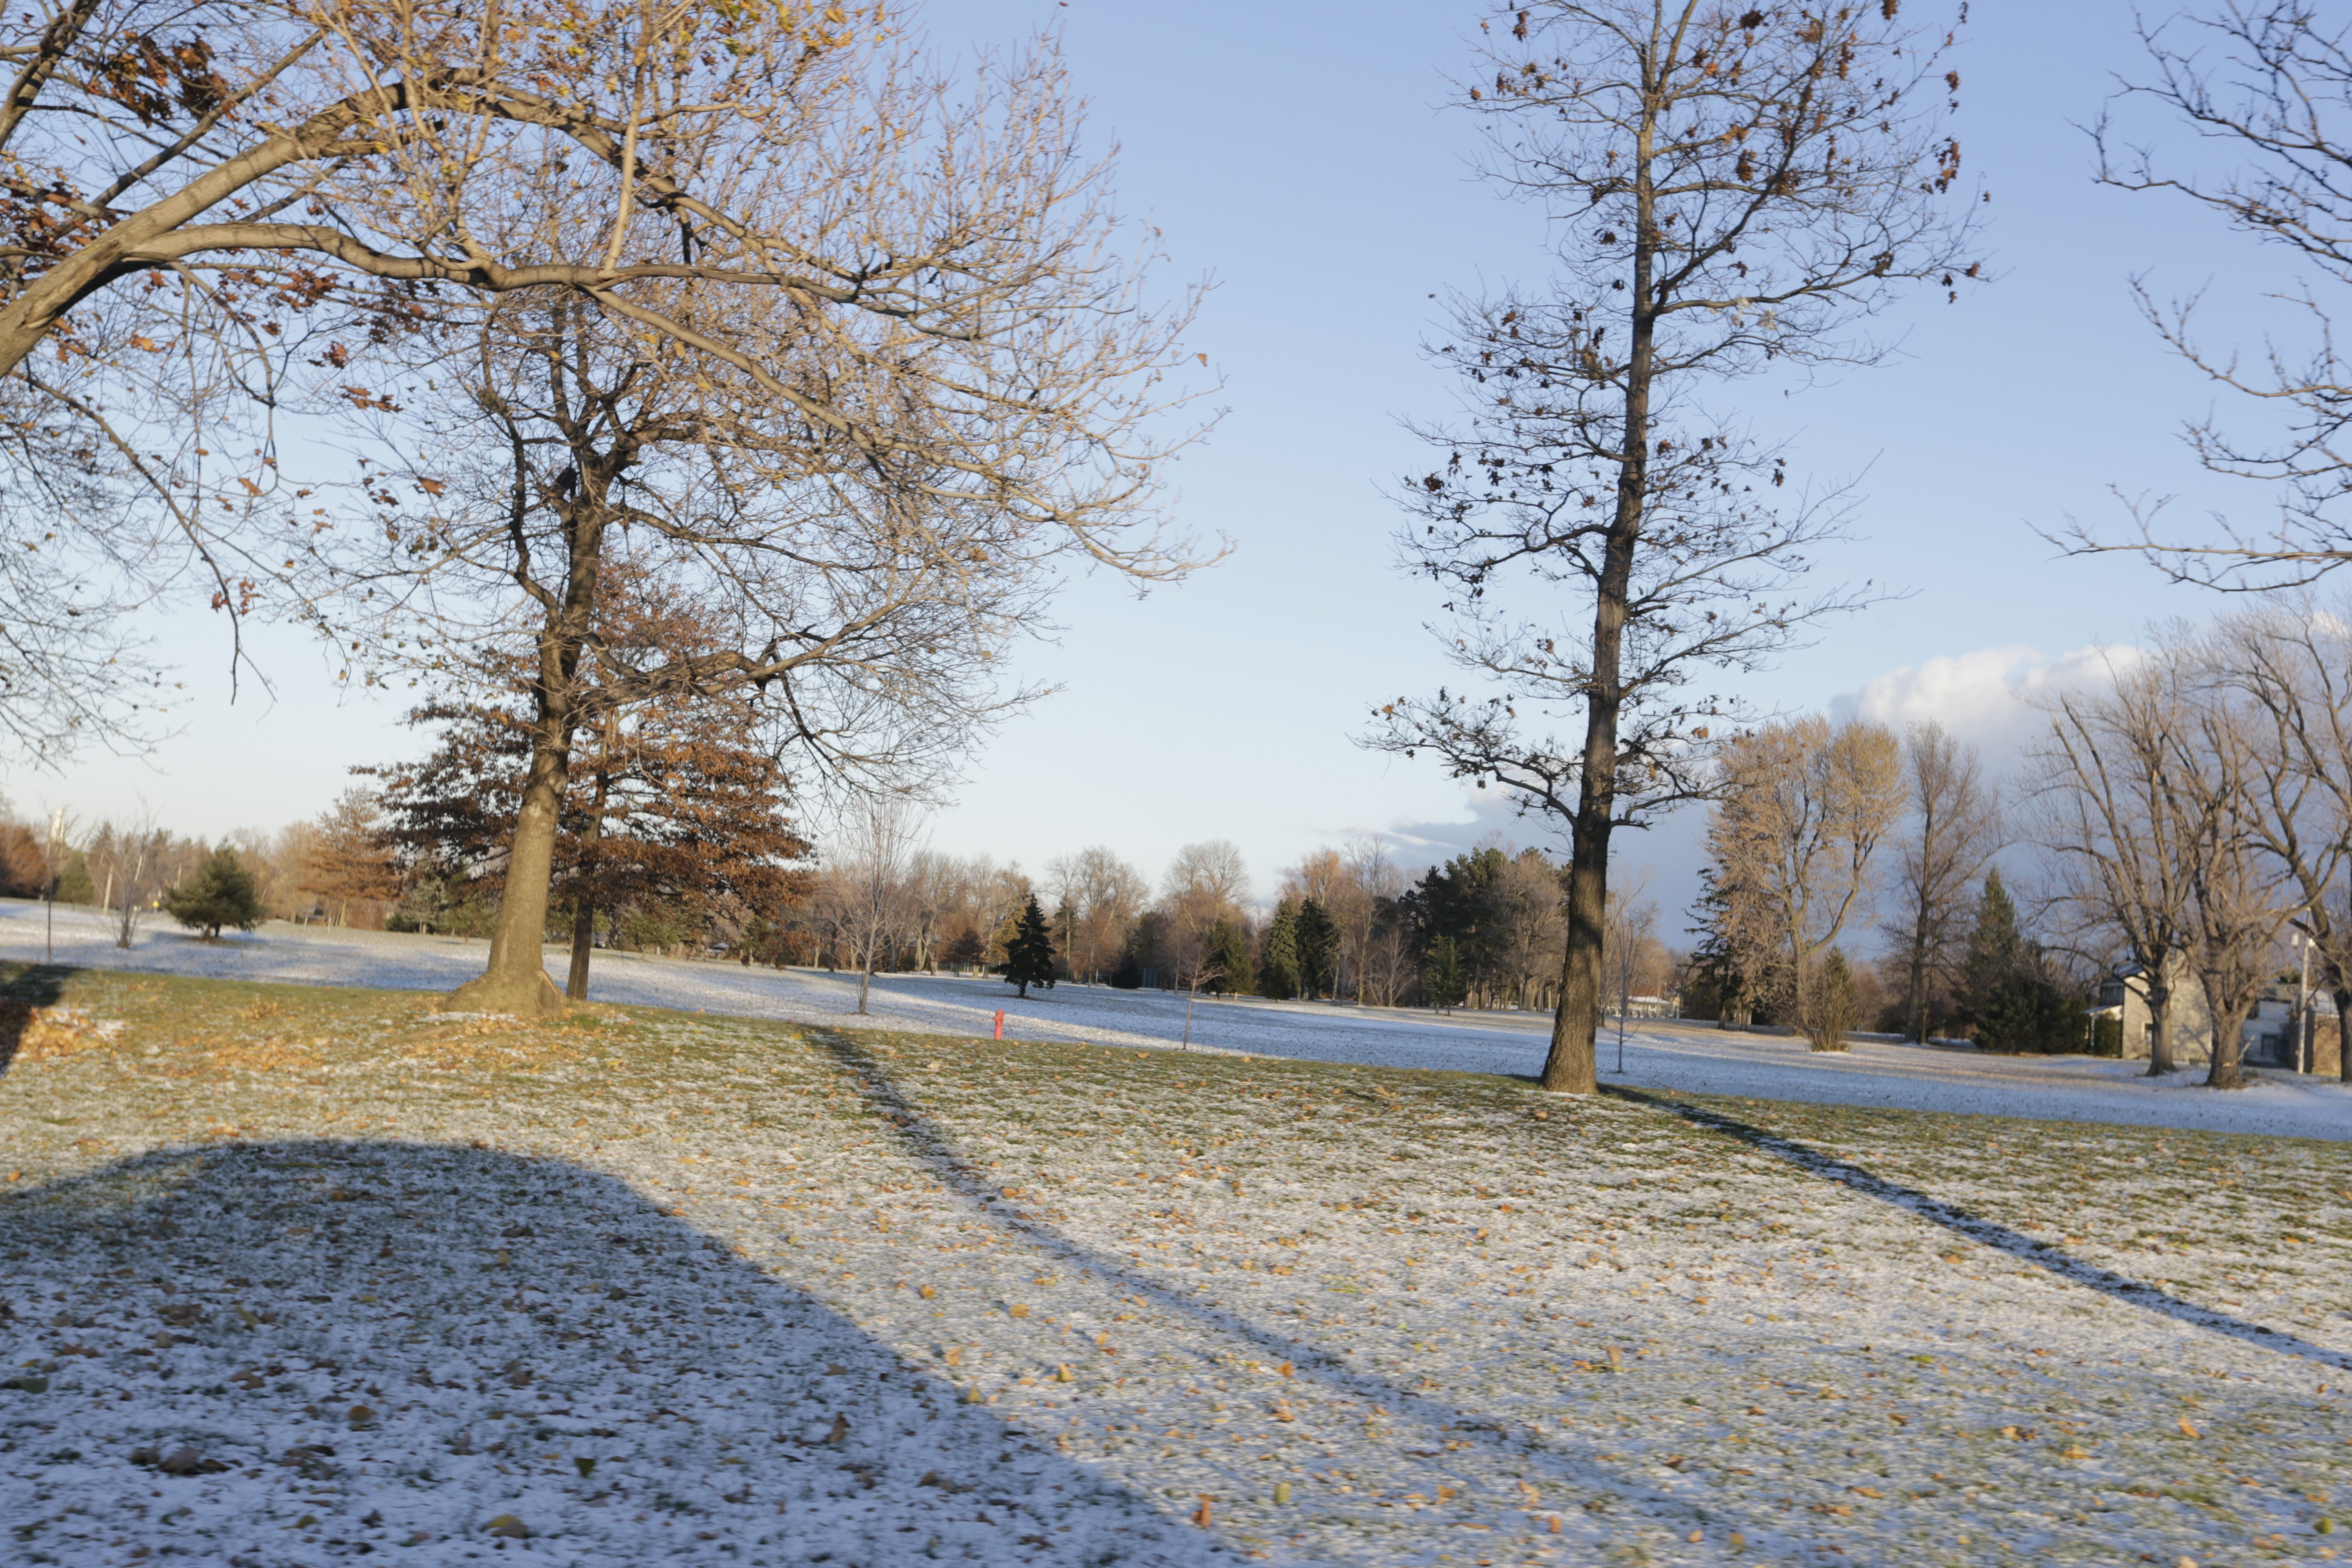 The sun shines in a clear sky and grass pokes through the snow at Grover Cleveland Golf Course in Buffalo on Tuesday, while a lake-effect storm raged a few miles away.